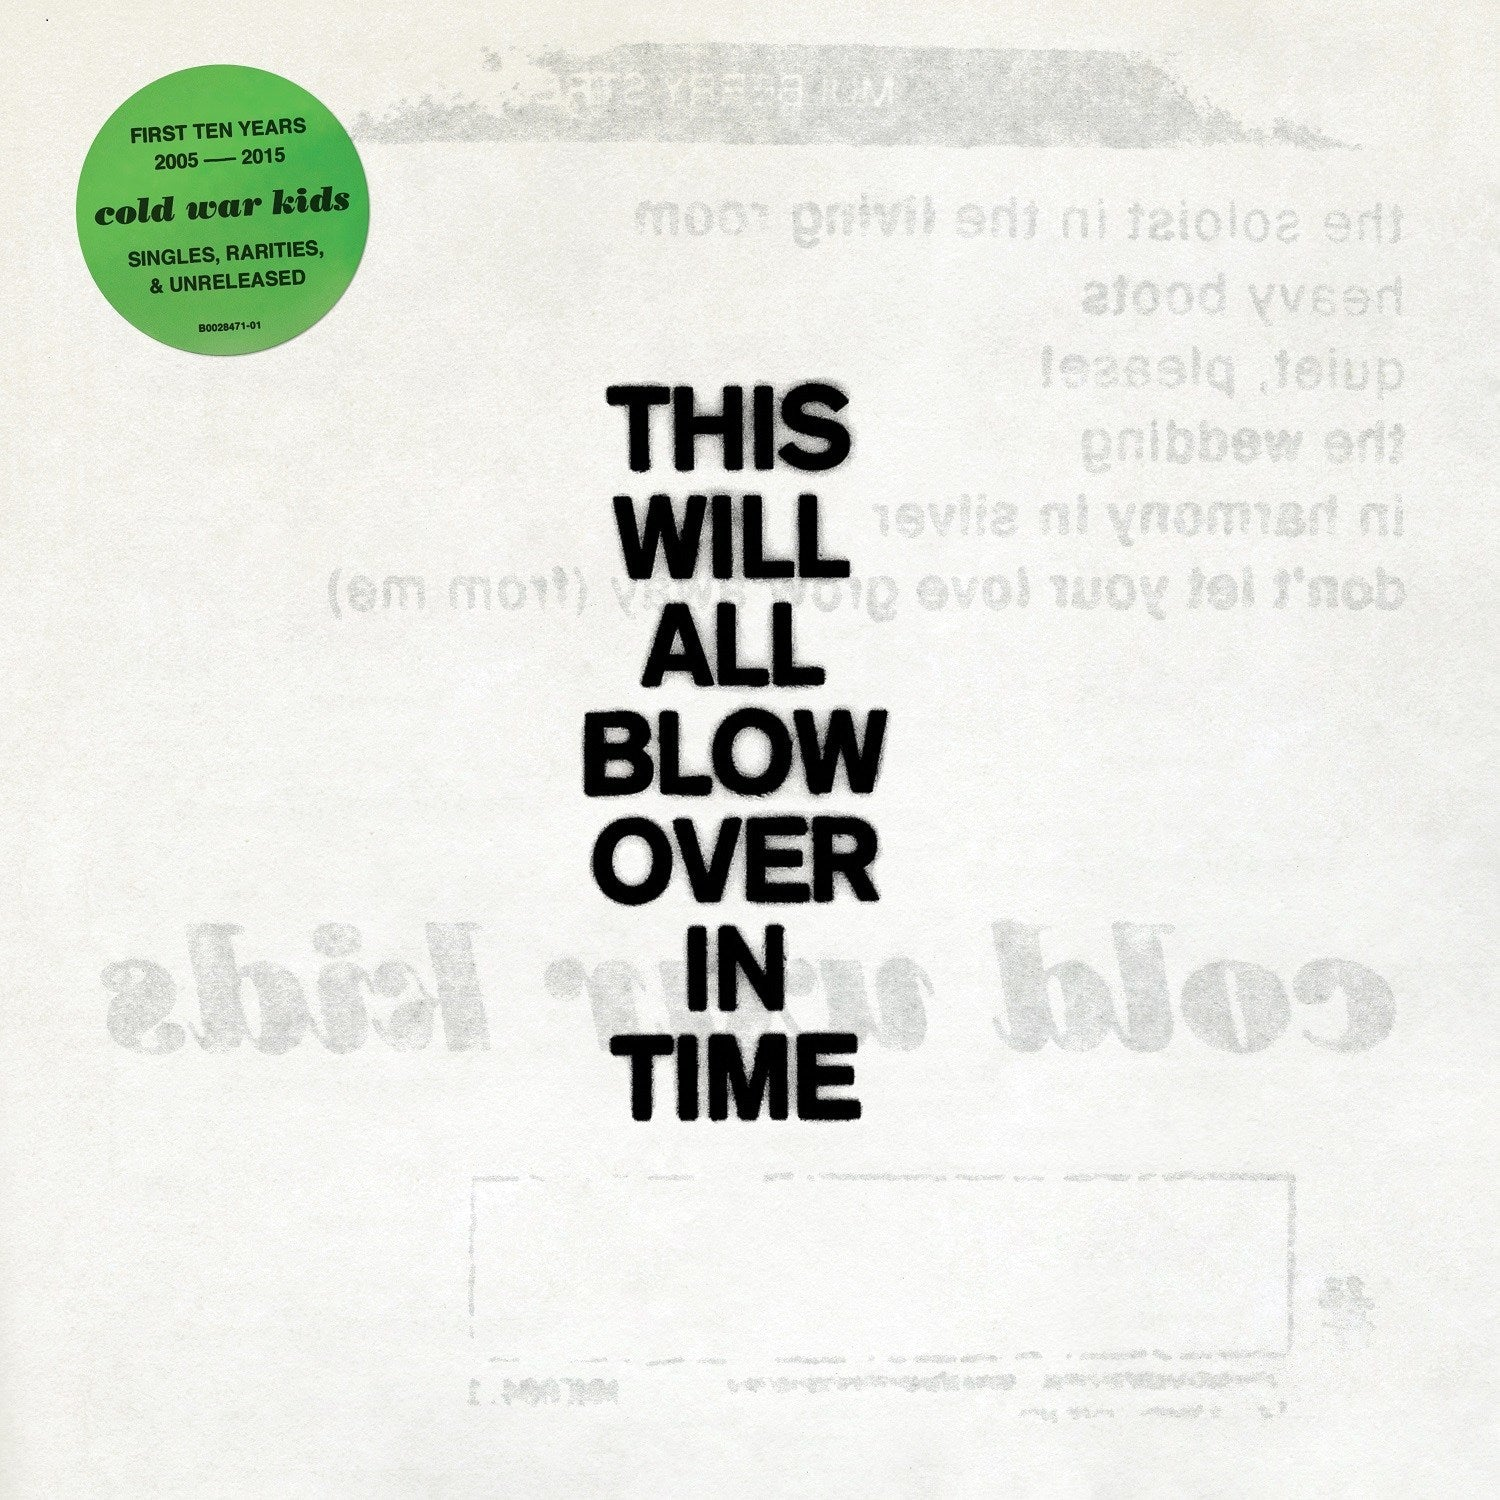 Cold War Kids - This Will All Blow Over In Time (Vinyl 2LP Record)